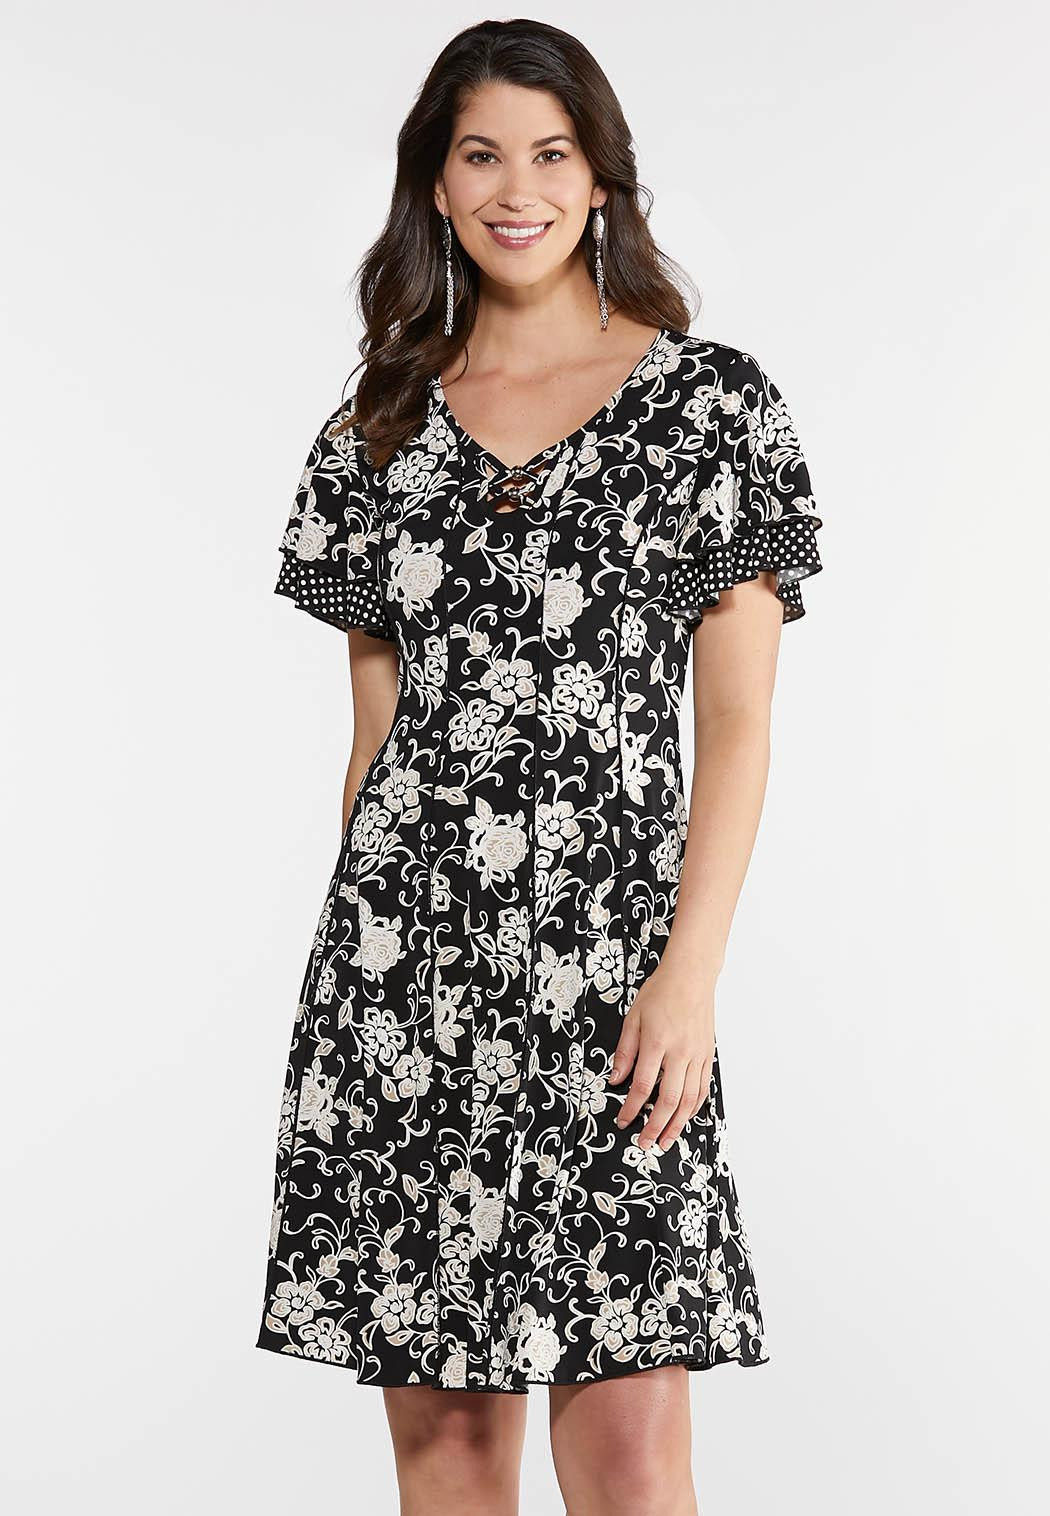 1603692228 Women's Dresses- Fit and Flare, Swing, Maxi, Midi & More Affordable Dresses